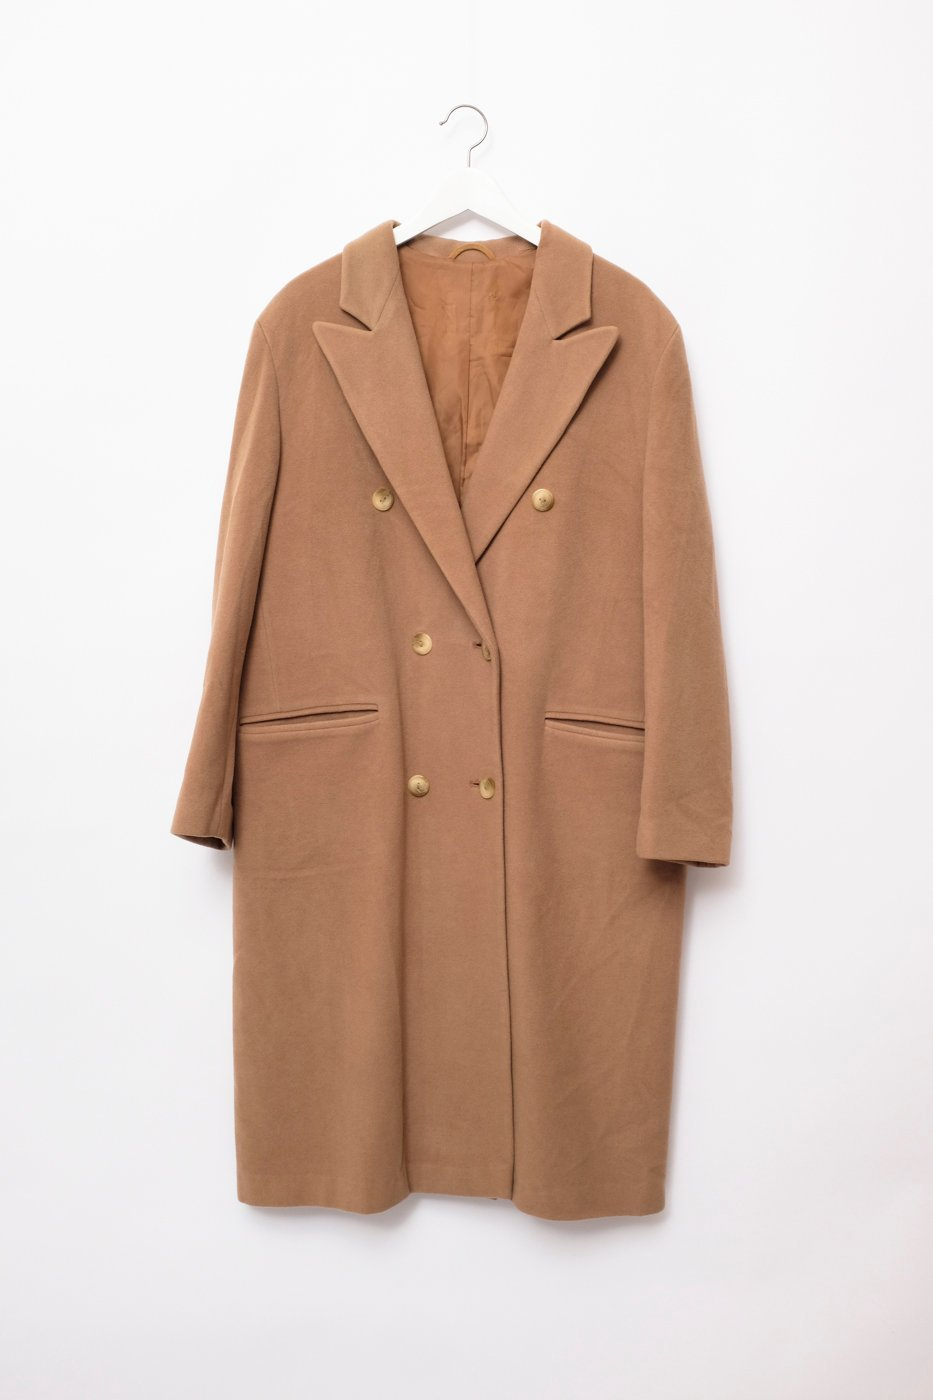 0336_NUDE OVERSIZED BLAZER LONG COAT